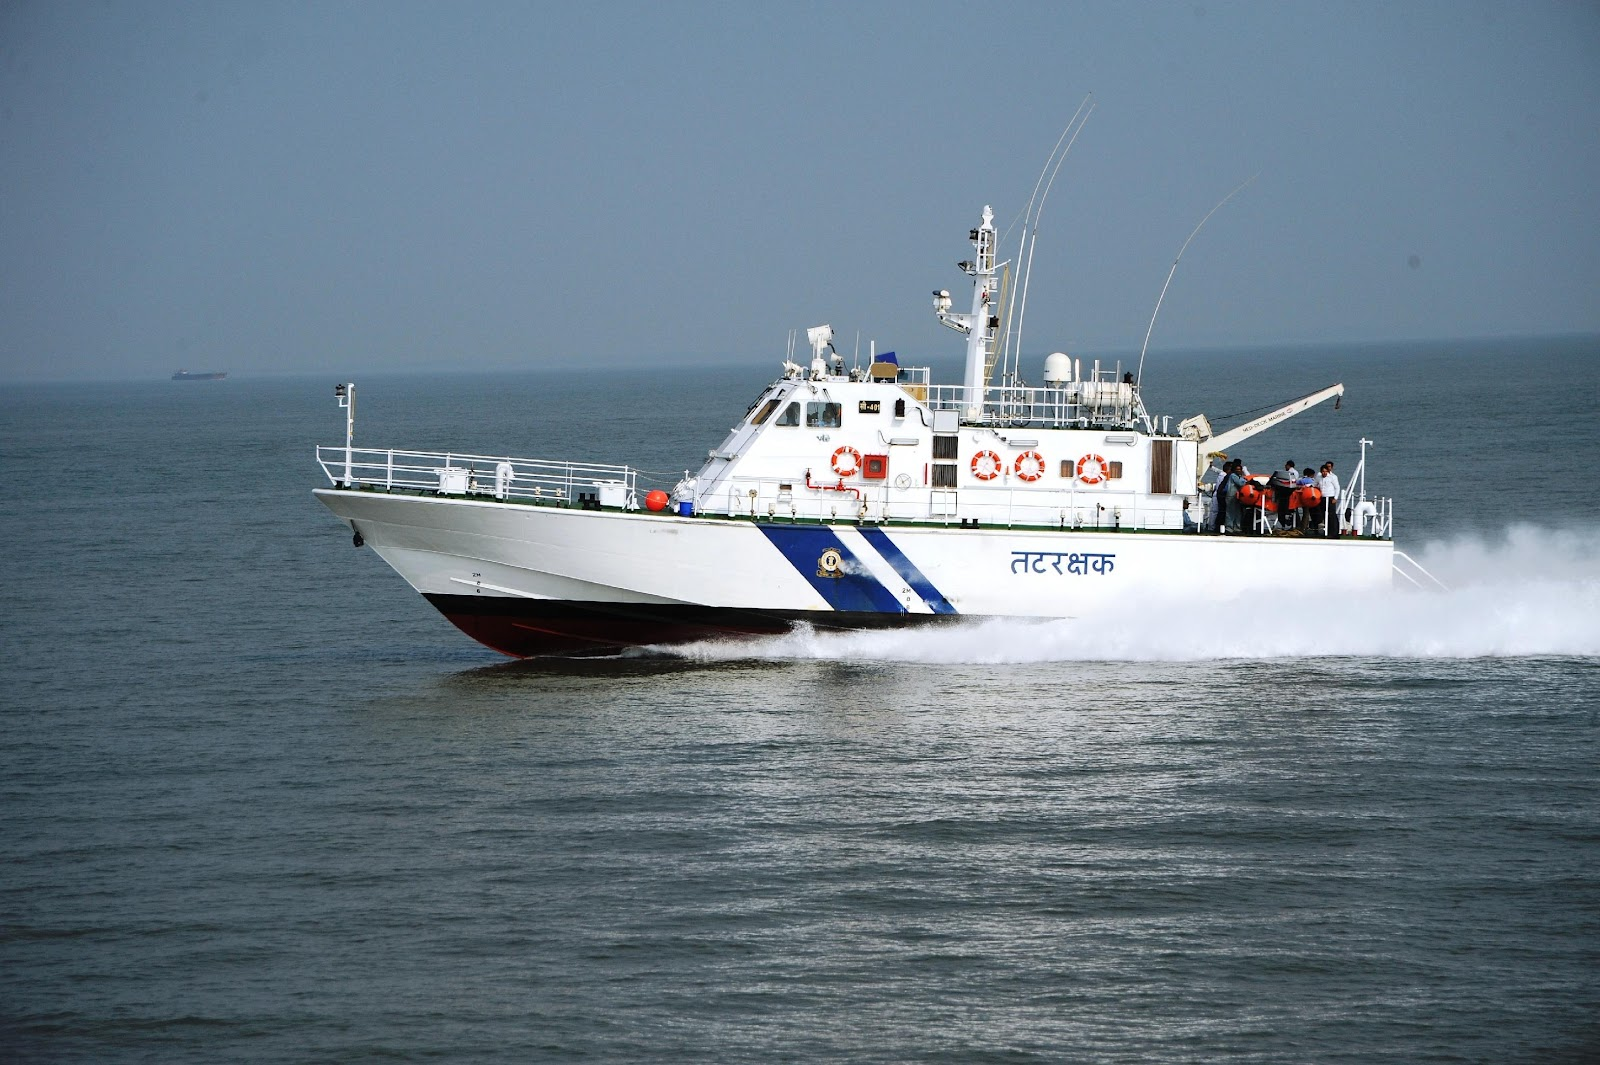 L&T Delivers Two More High Speed Interceptor ships to Indian Coast Guard